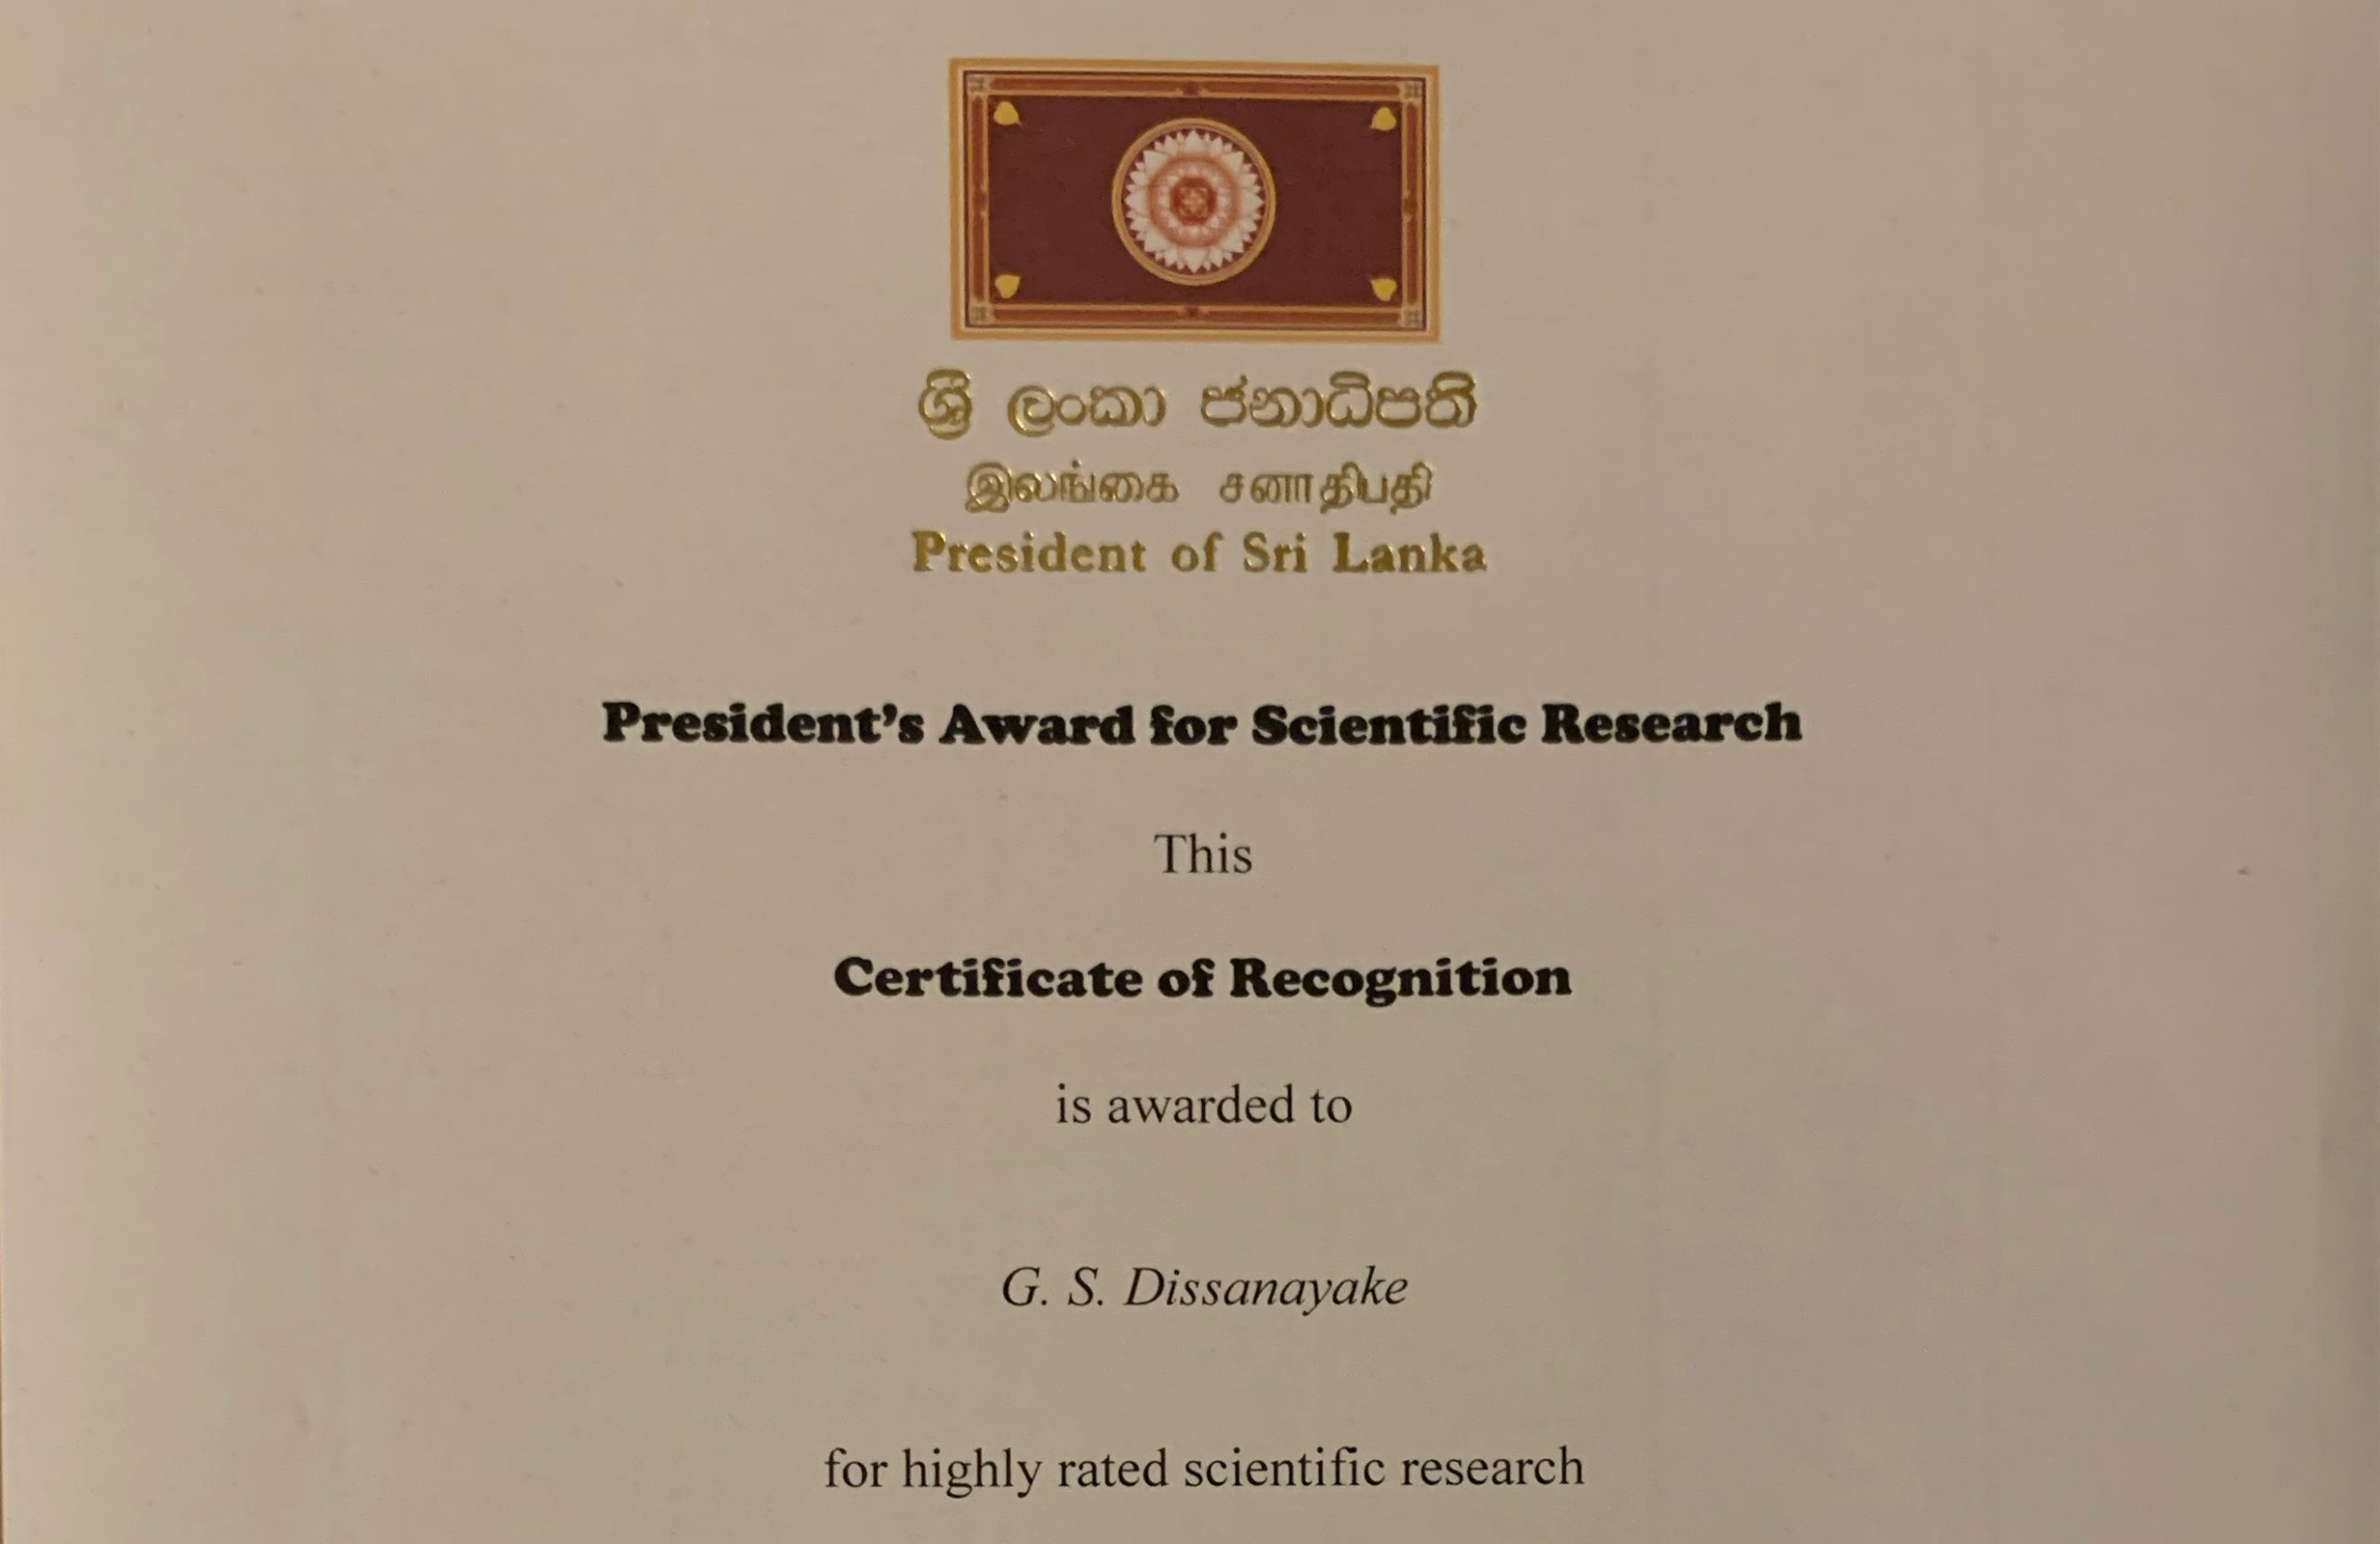 Dr. Sanjaya Dissanayake received the President's Award for Scientific Research